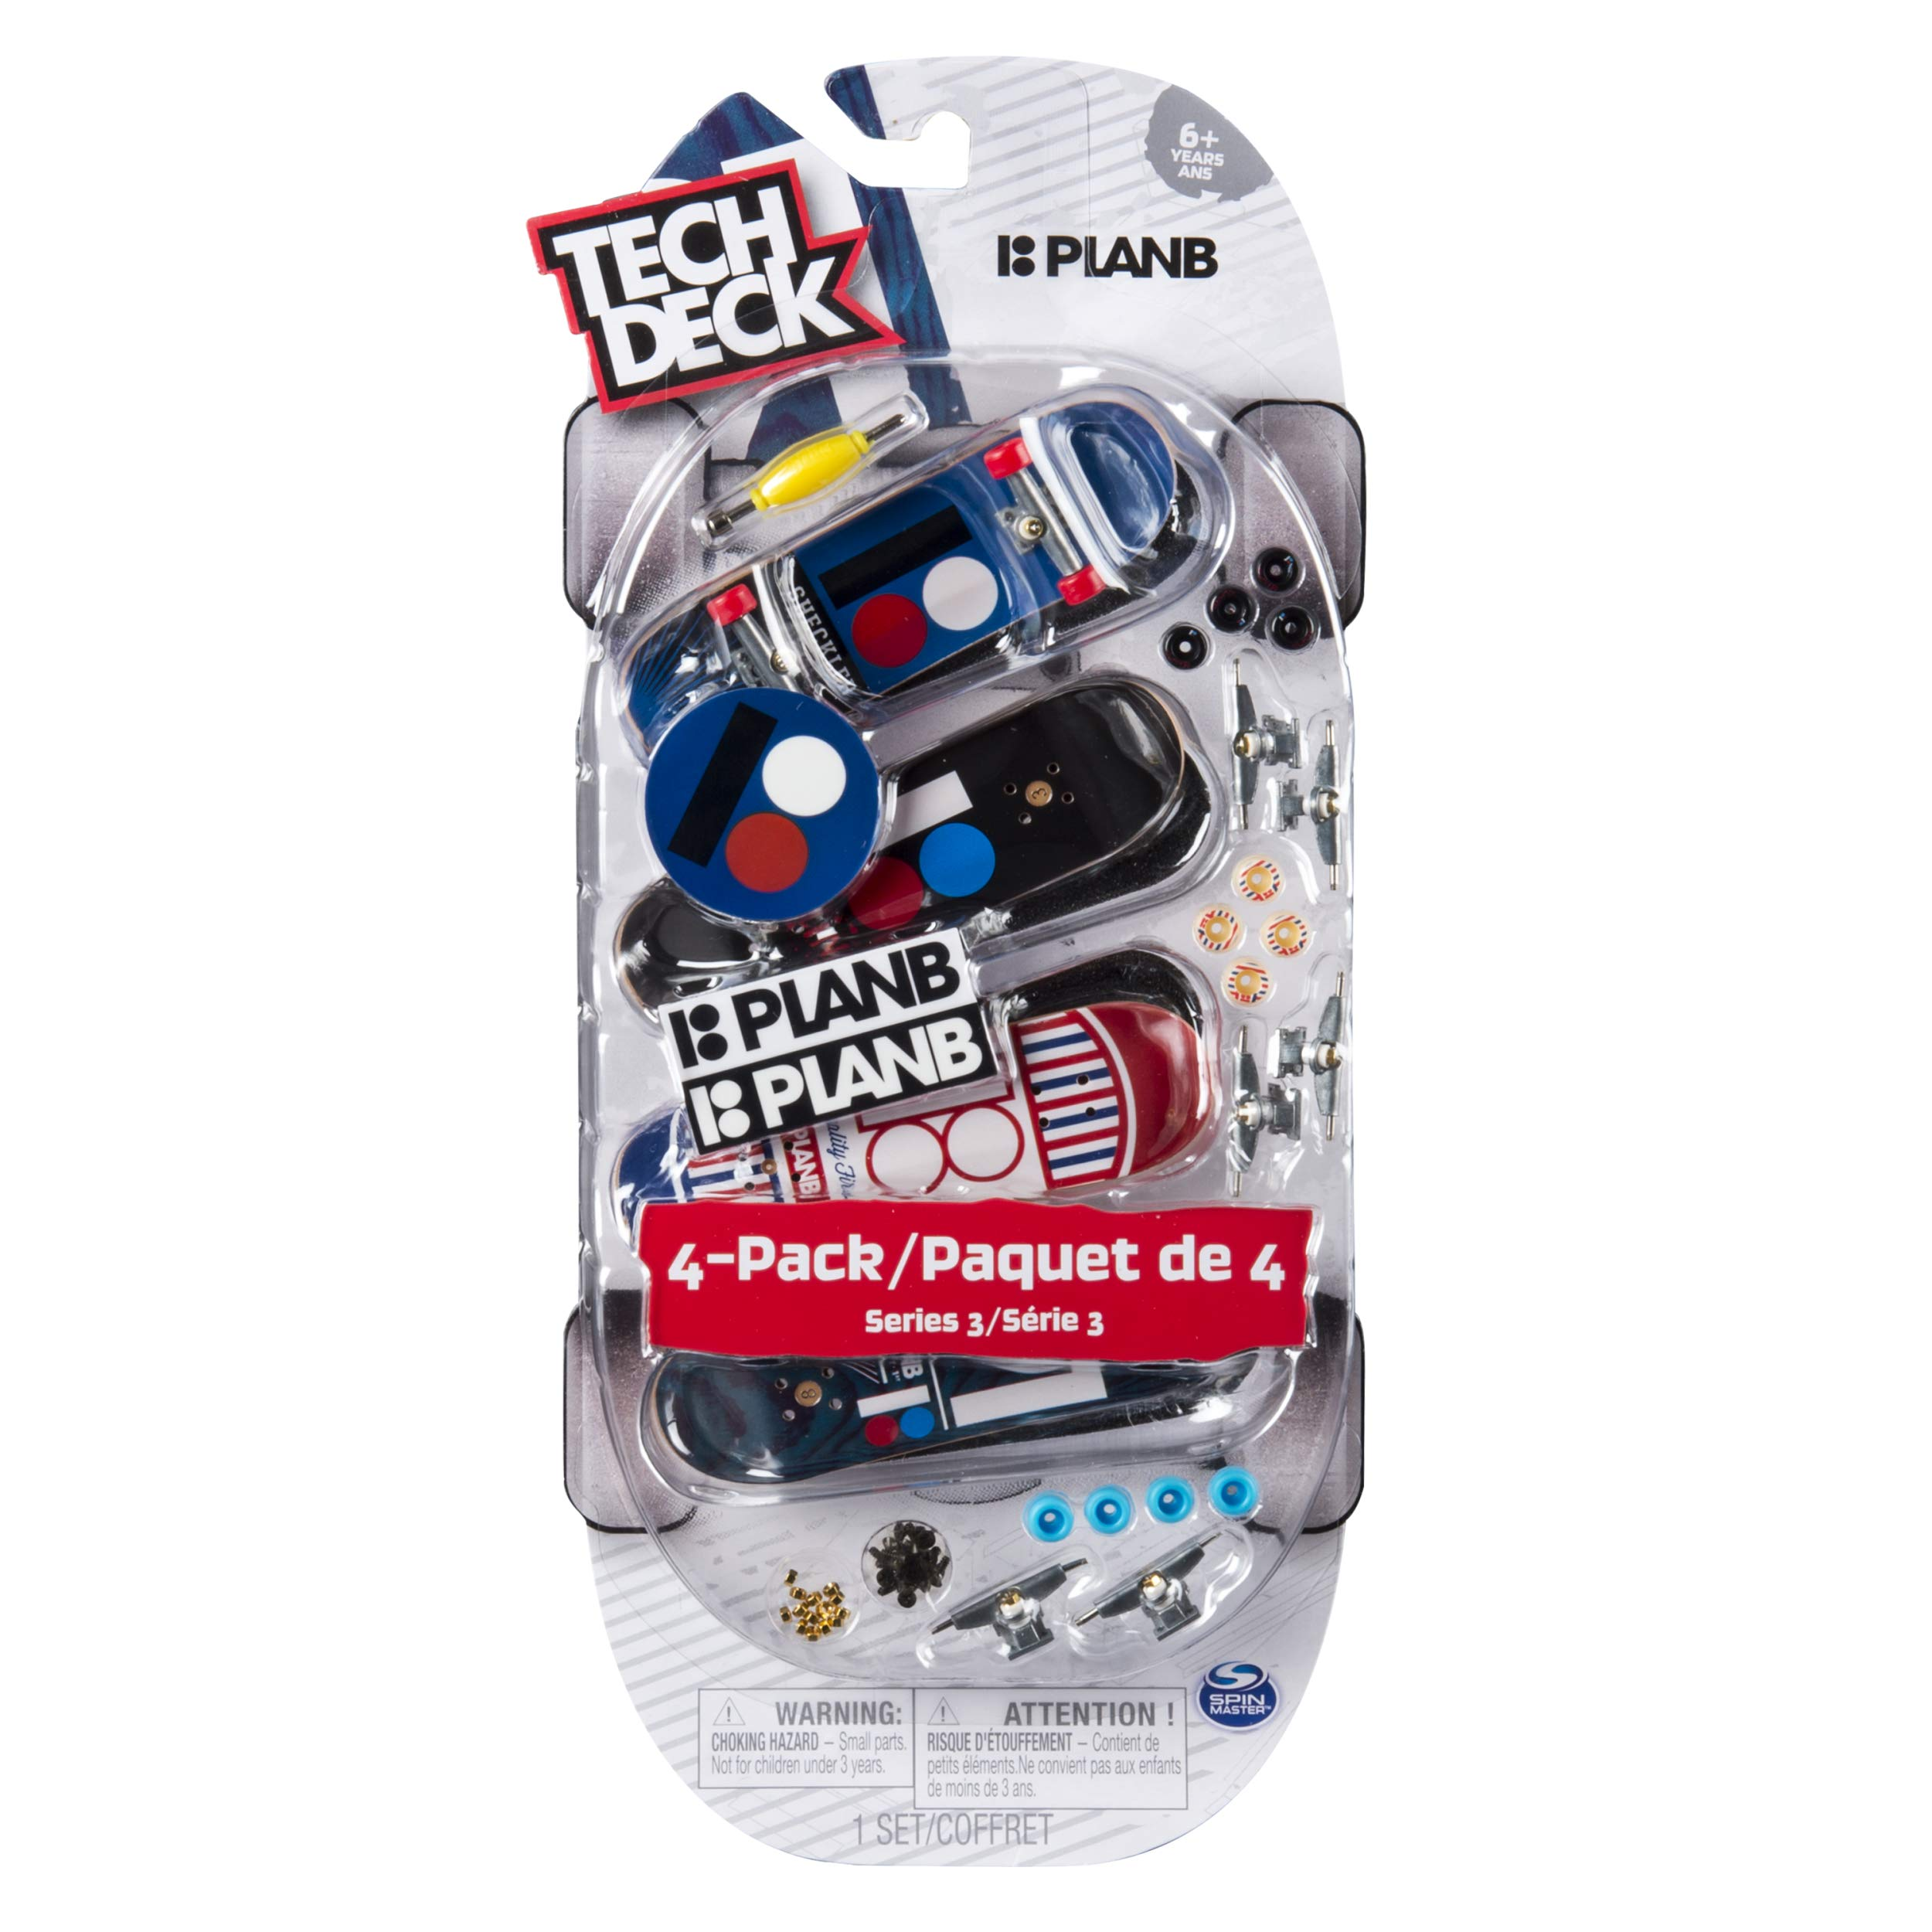 Tech Deck - 96mm Fingerboards - 4-Pack - Plan B